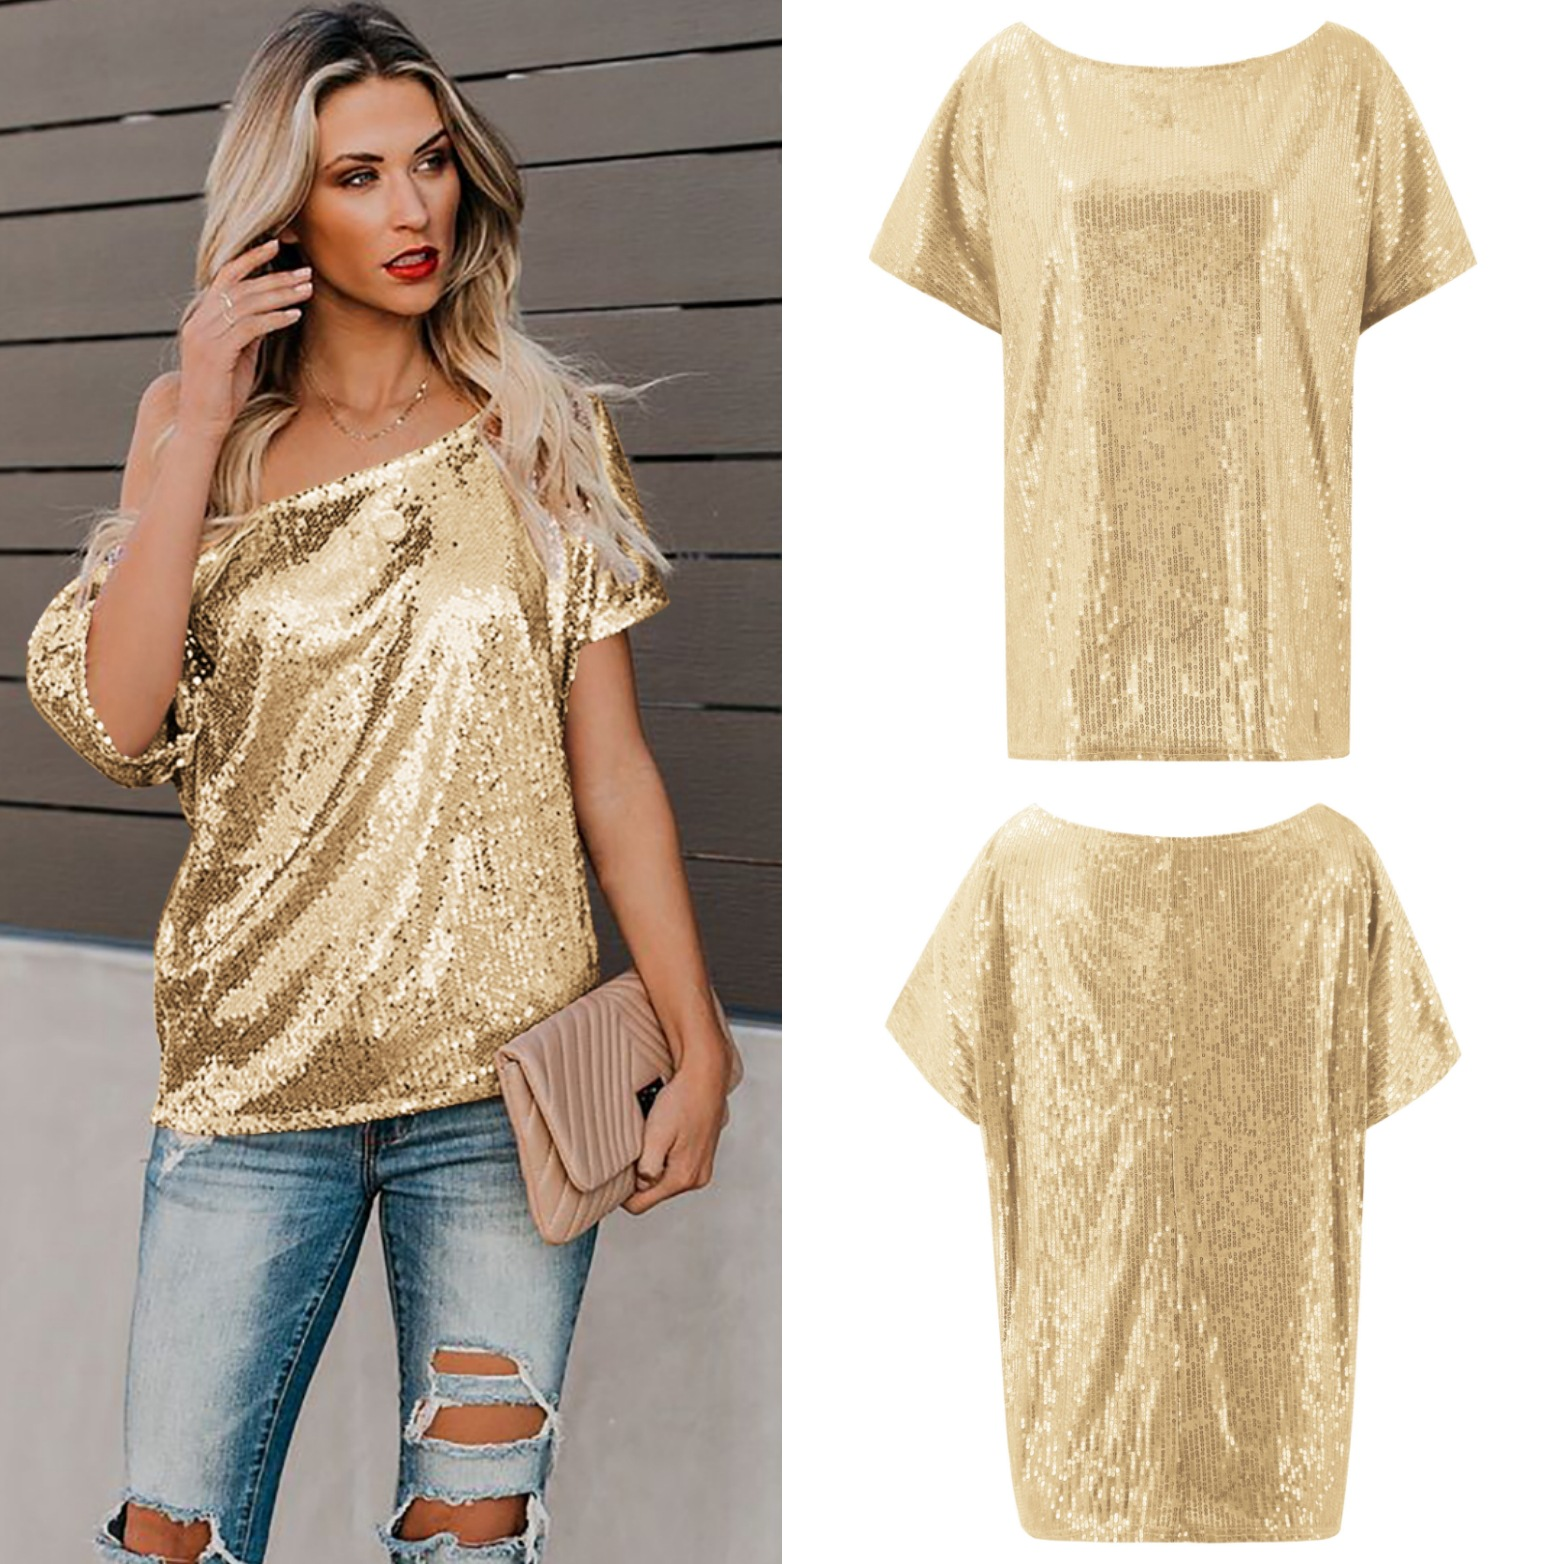 Sequin shirt 2020 sequin top Tee club Women Shirt Camiseta Mujer 2019 Verano Short Sleeve blusas feminina Pink Black Gold Blue image